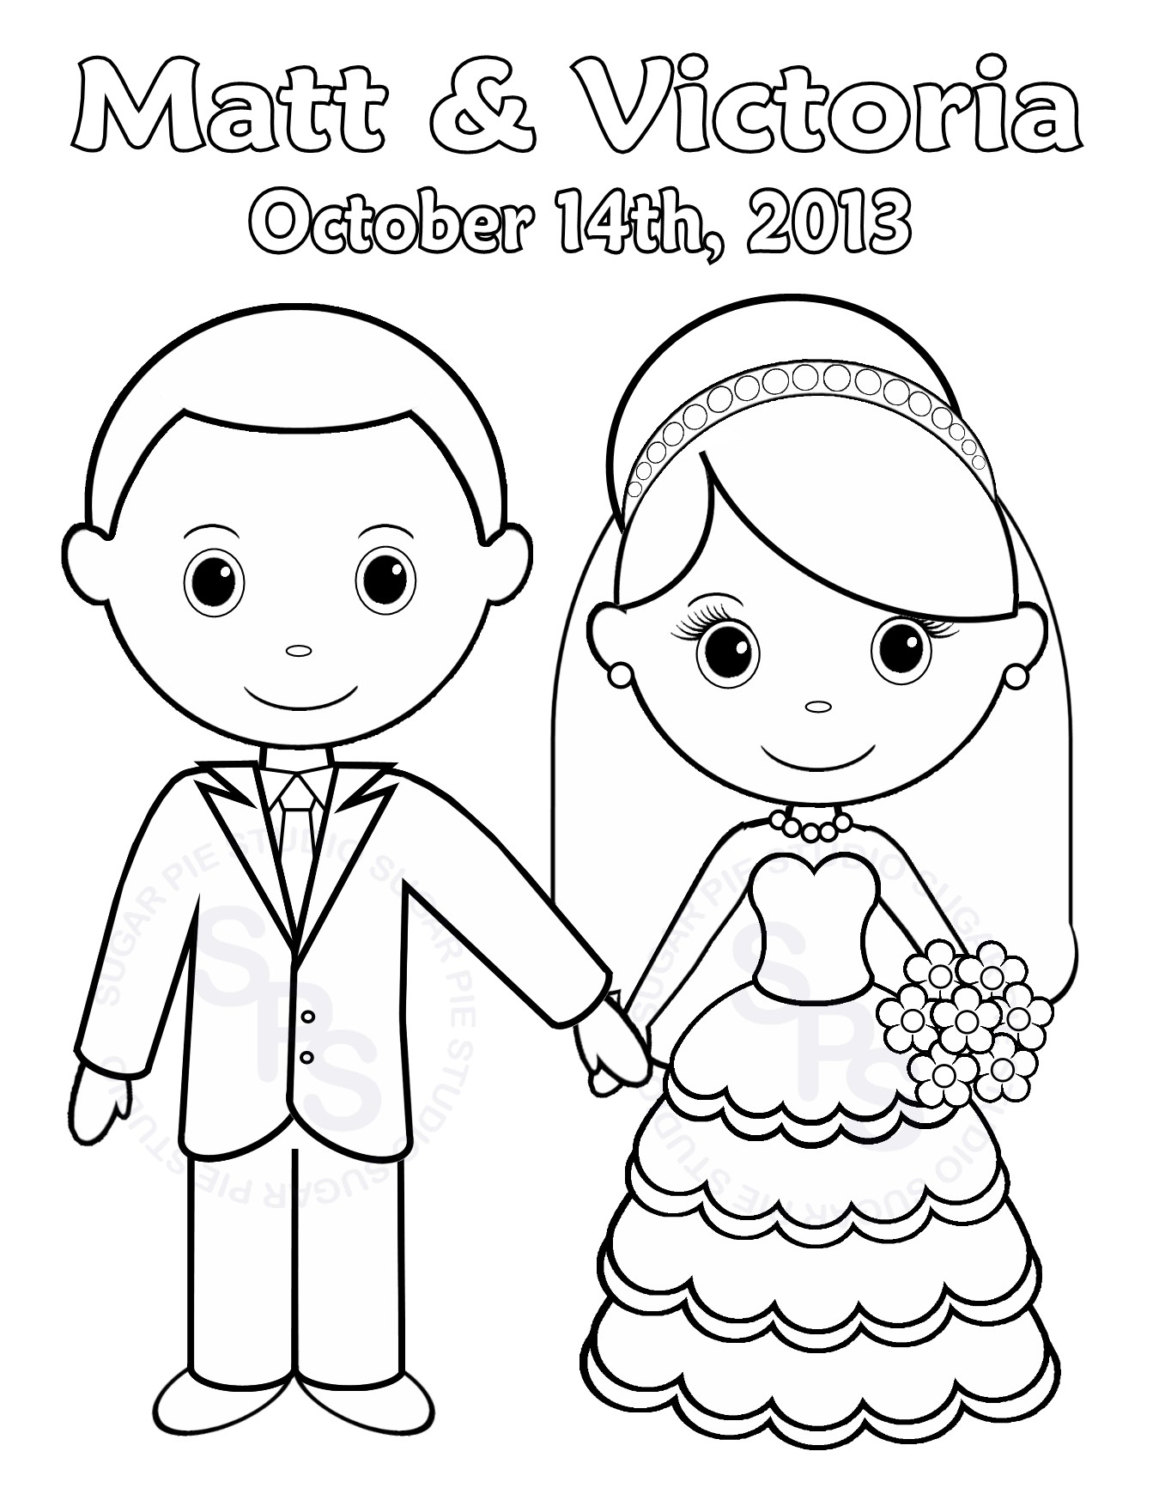 Personalized Name Coloring Pages at GetDrawings.com   Free for ...